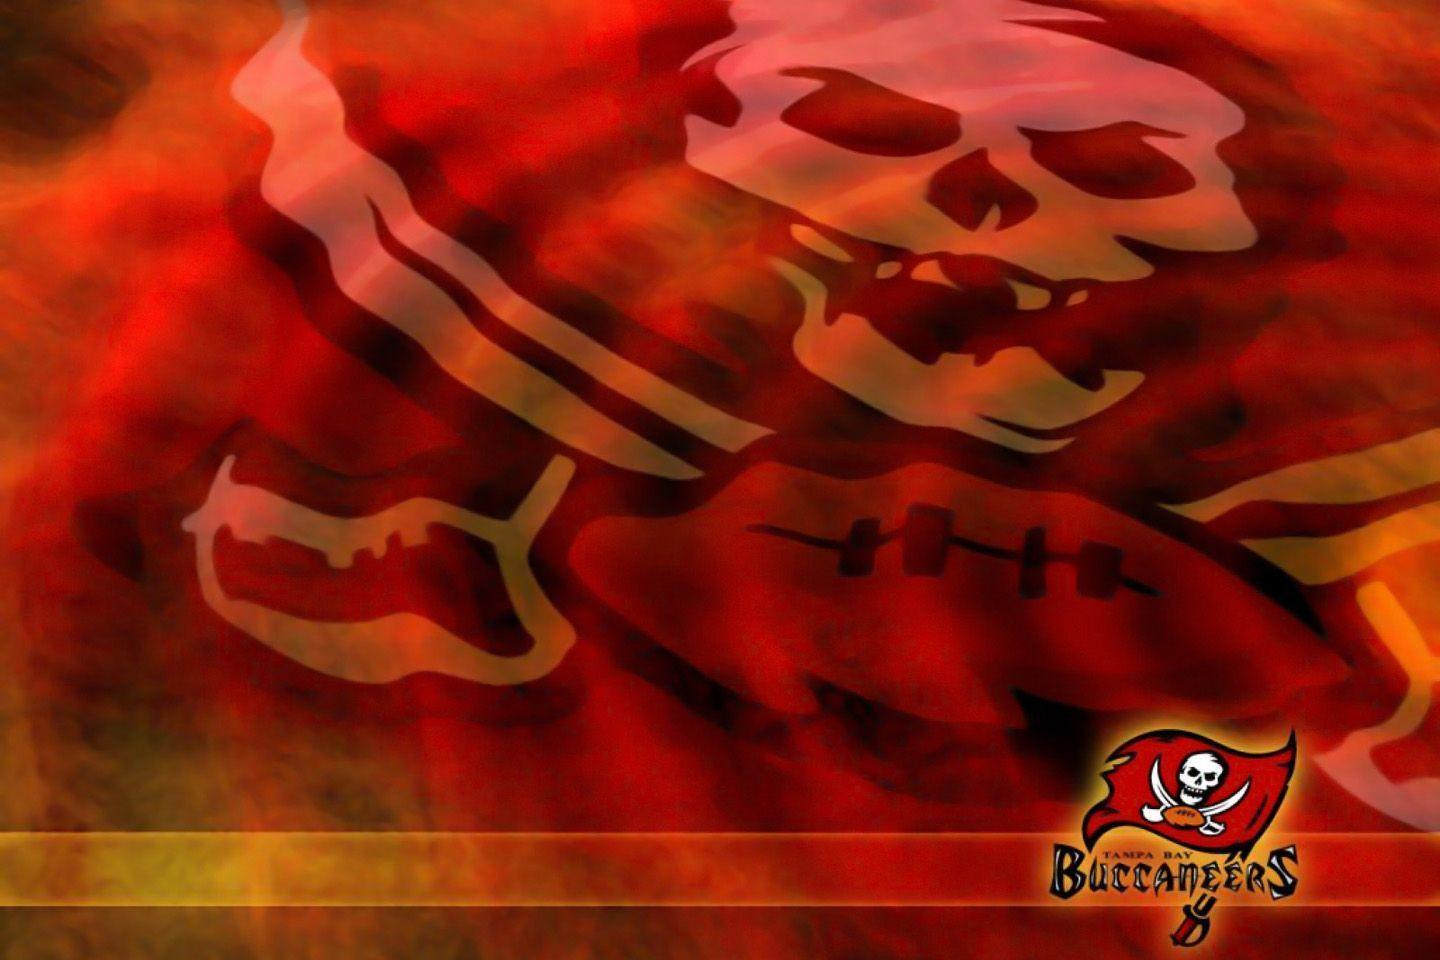 Tampa Bay Buccaneers Wallpaper Desktop - WallpaperSafari